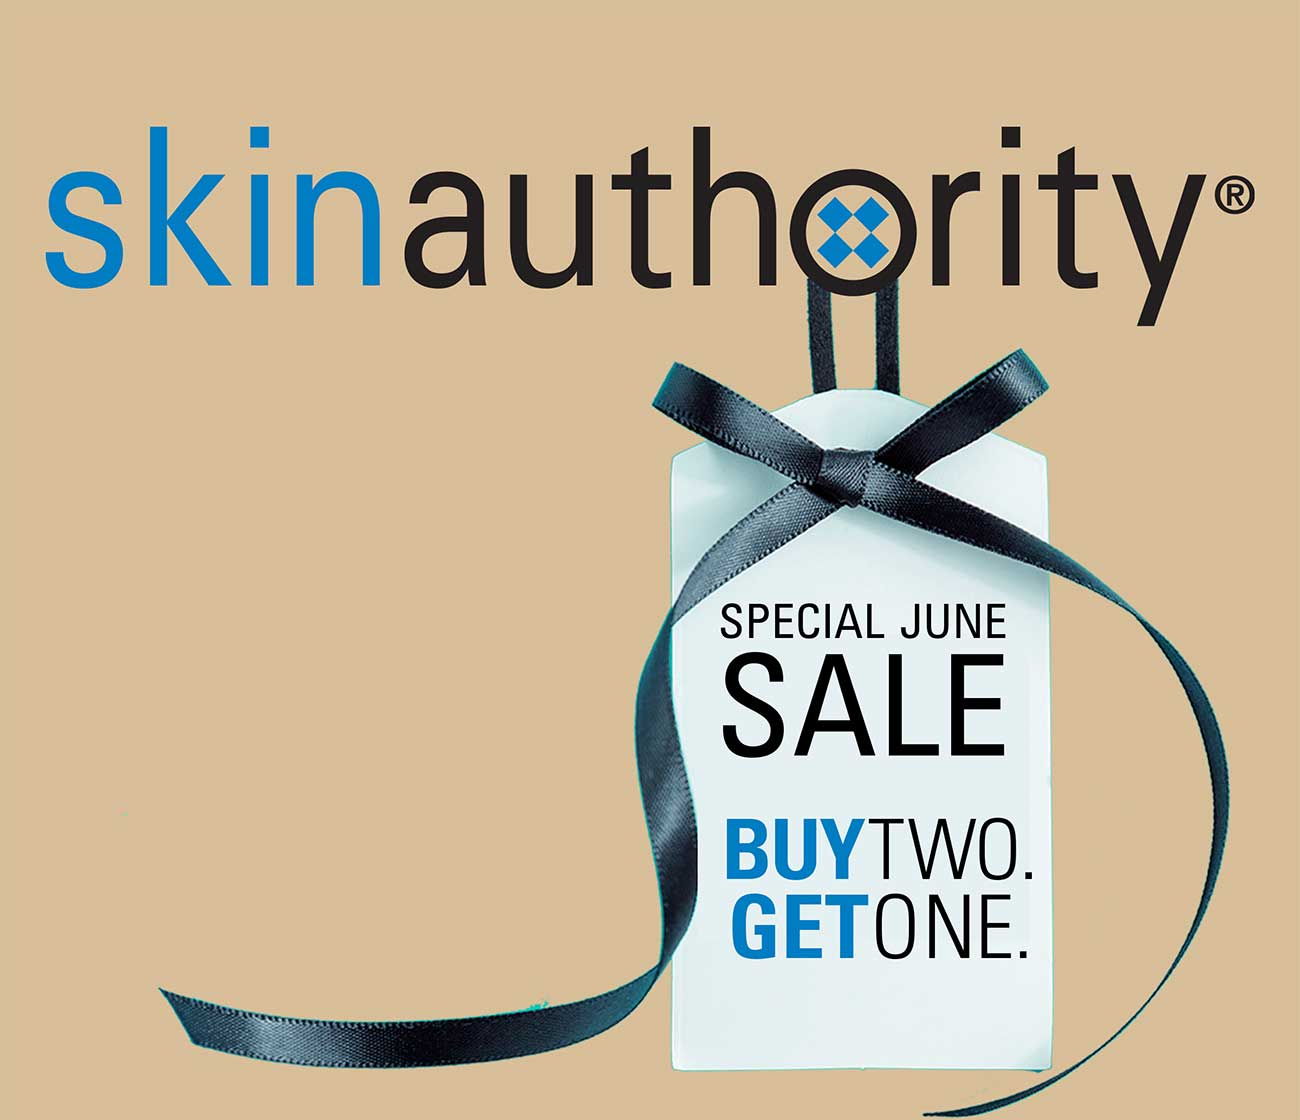 skinauthority | Buy Two. Get One. | SPECIAL JUNE SALE